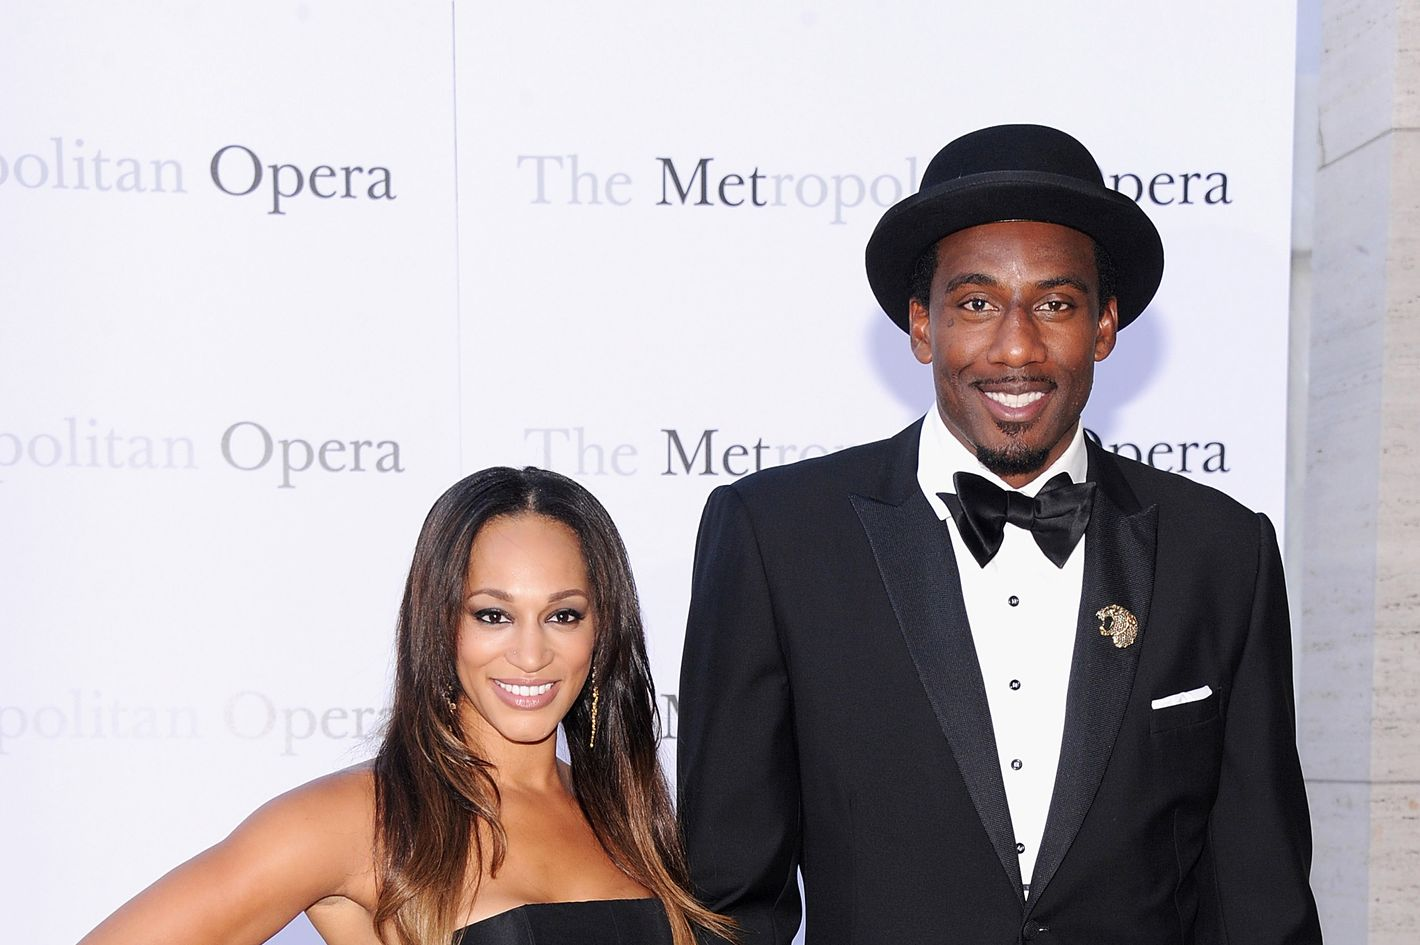 """Alexis Stoudemire and Amar'e Stoudemire attend the Metropolitan Opera Season Opening Production Of """"Eugene Onegin"""" at The Metropolitan Opera House on September 23, 2013 in New York City."""